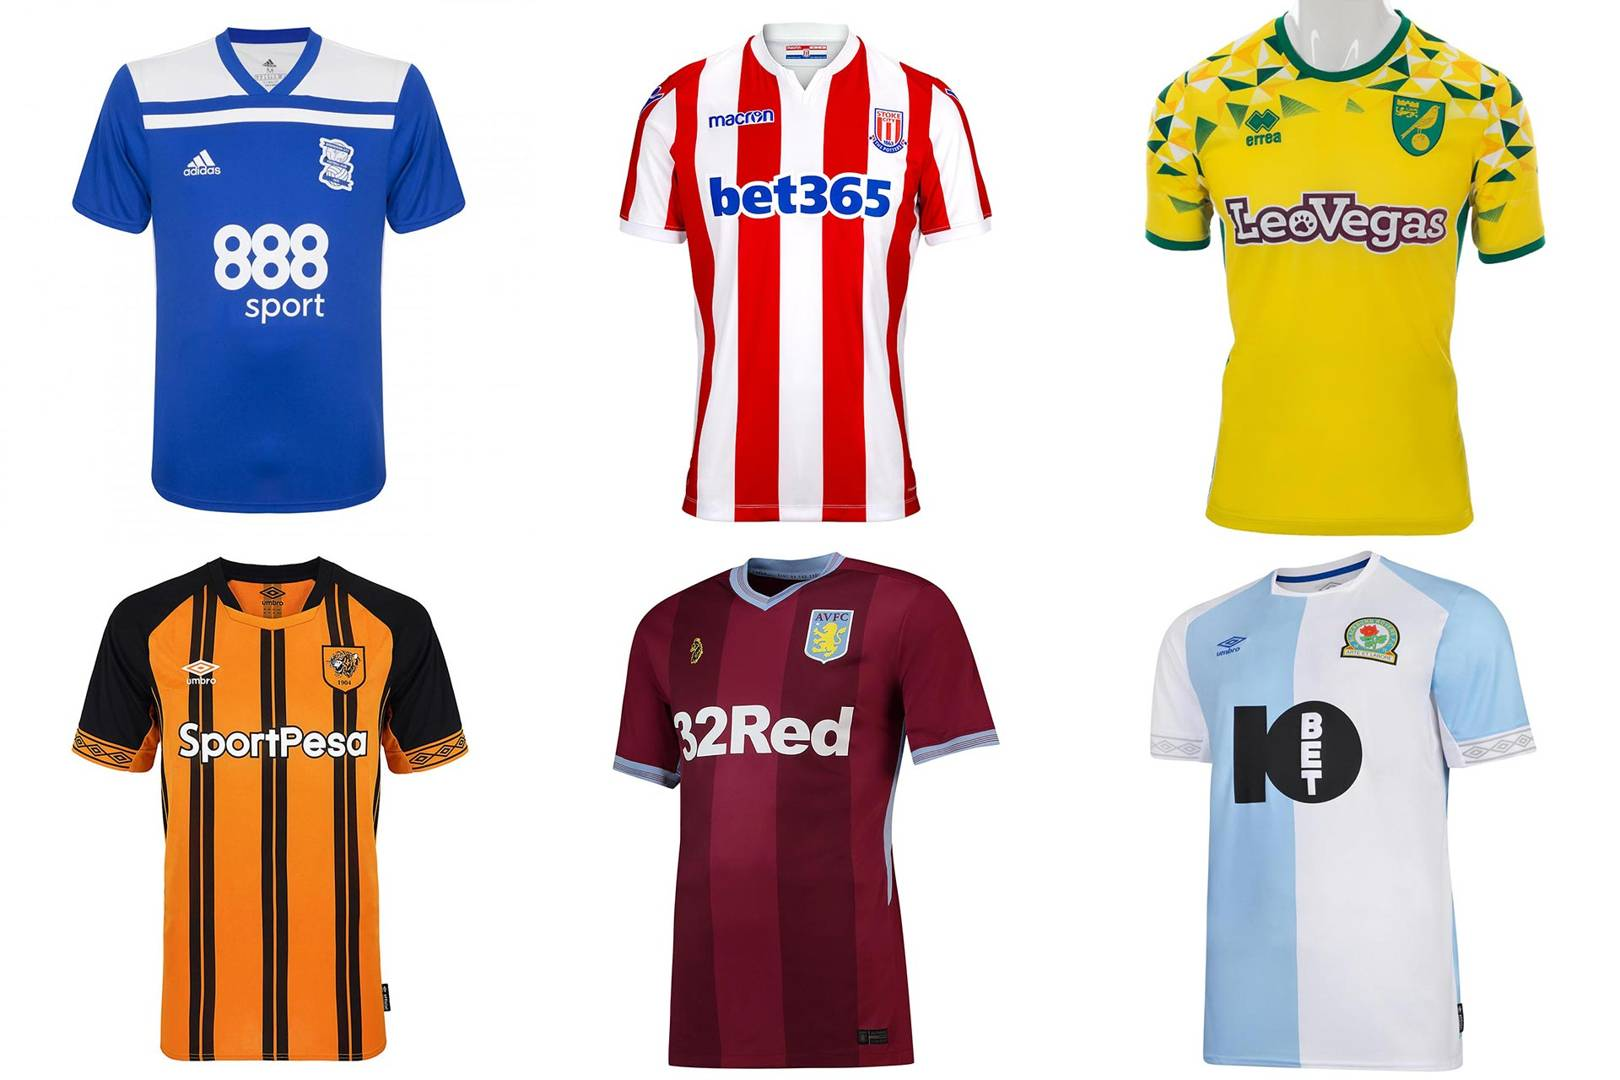 30da5cd99dc Championship kits 2018/19 ranked from worst to best | British GQ